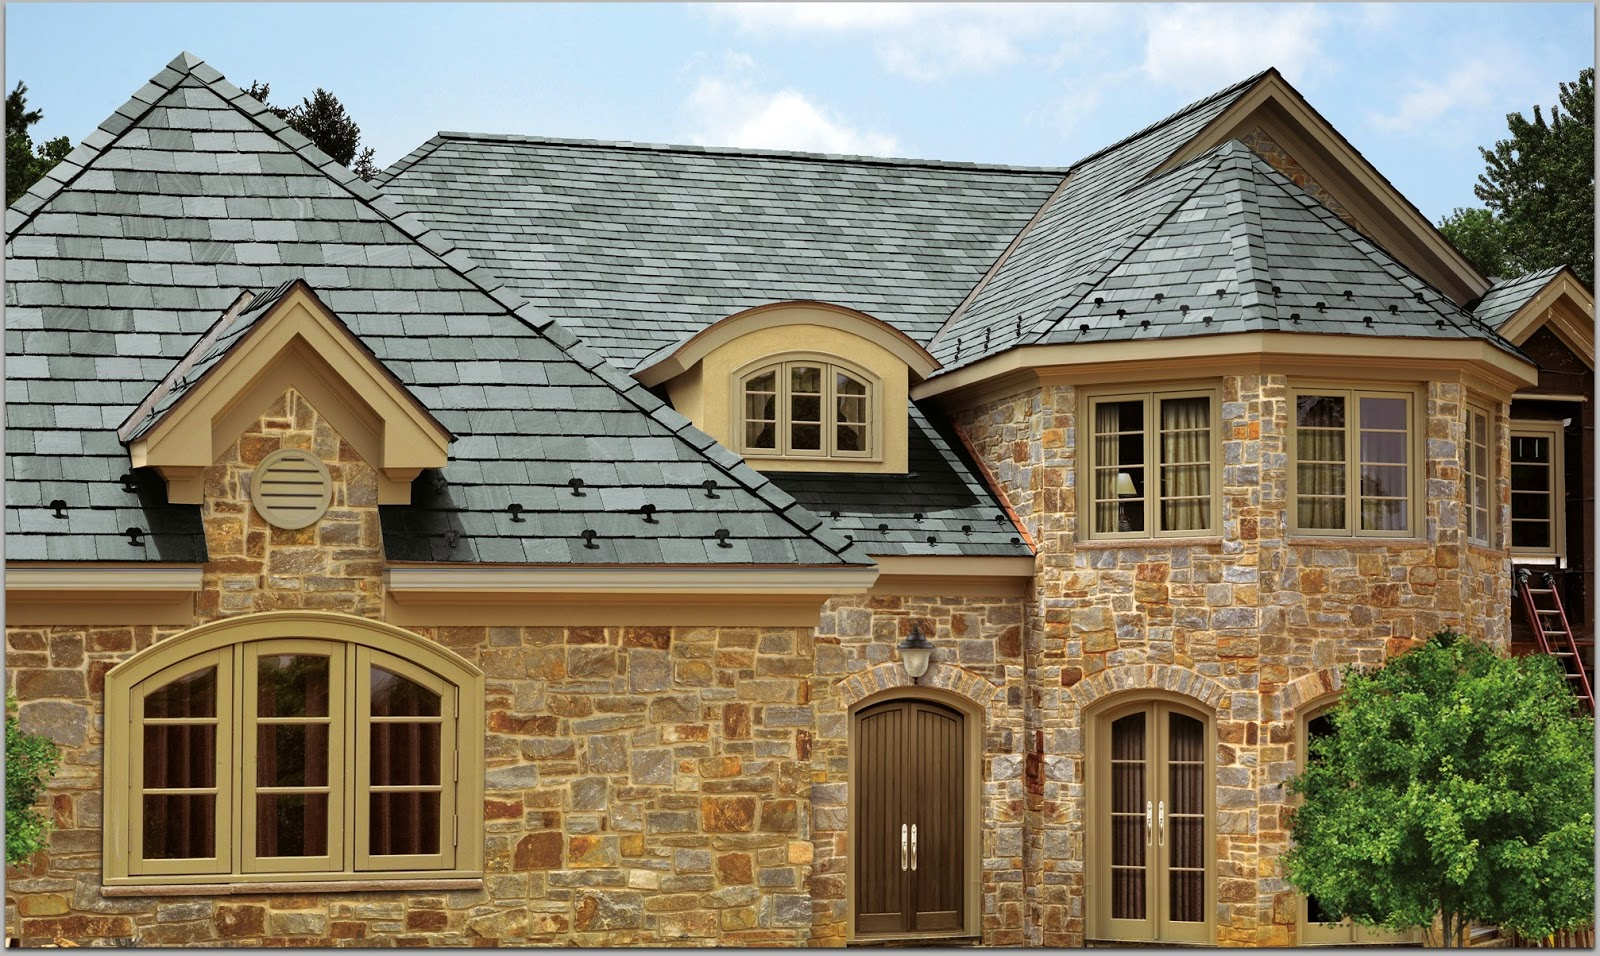 Delightful EDM Slate Roofing Is Said To Be The Most Best And Most Trusted Roofing  Contractors In Indianapolis When It Comes To Replacing And Repair Roofing.